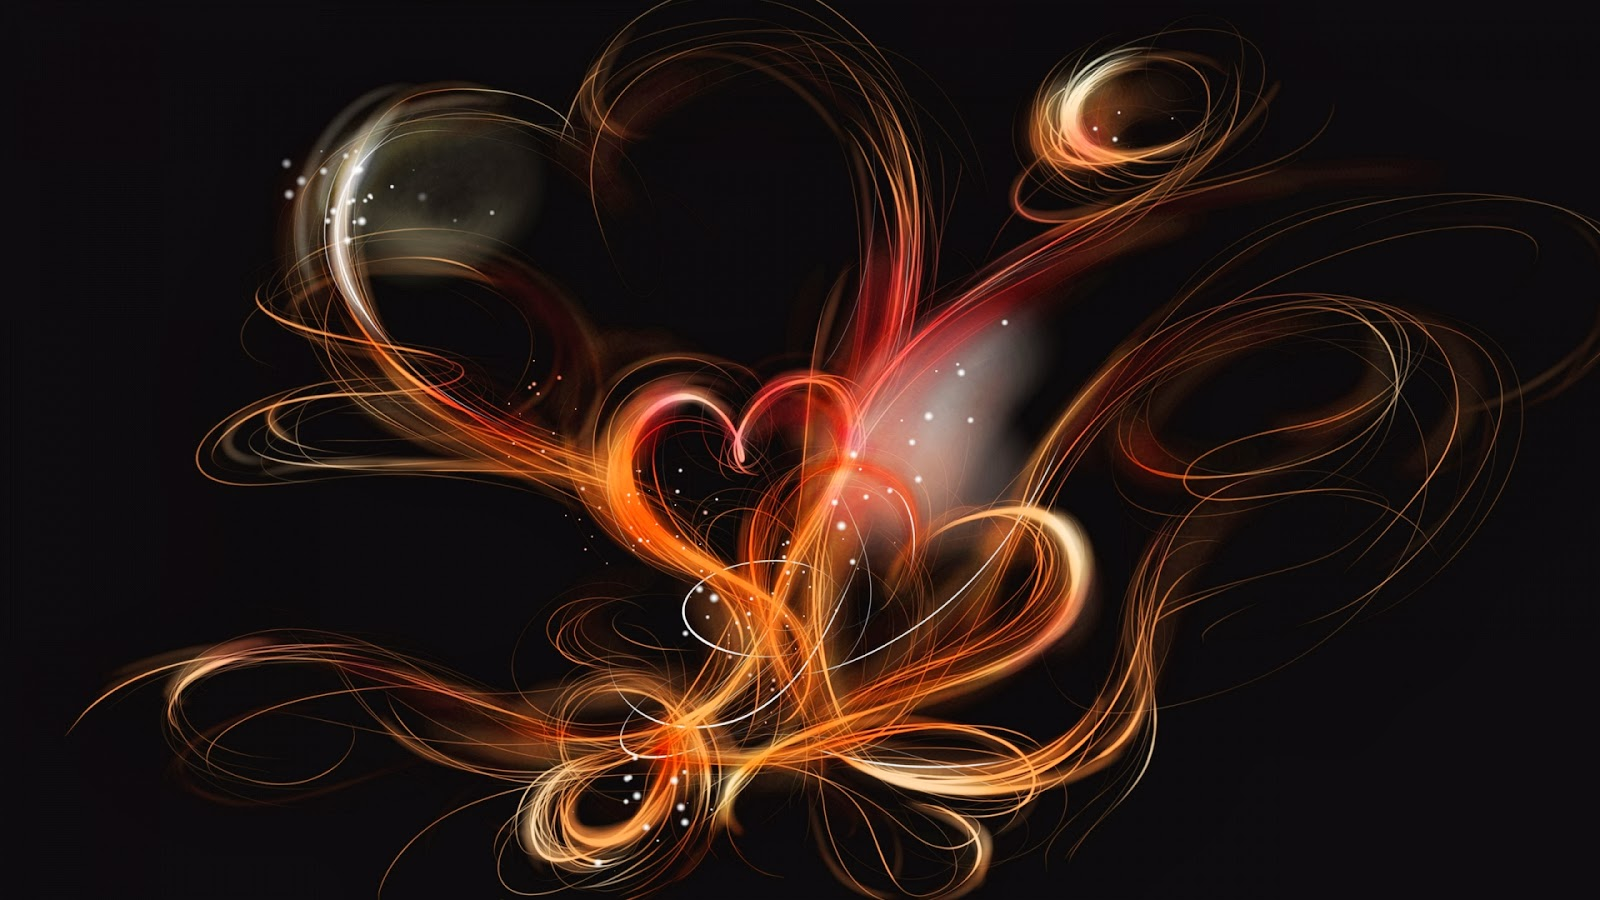 Abstract Heart Design   Full HD Desktop Wallpapers 1080p  Abstract